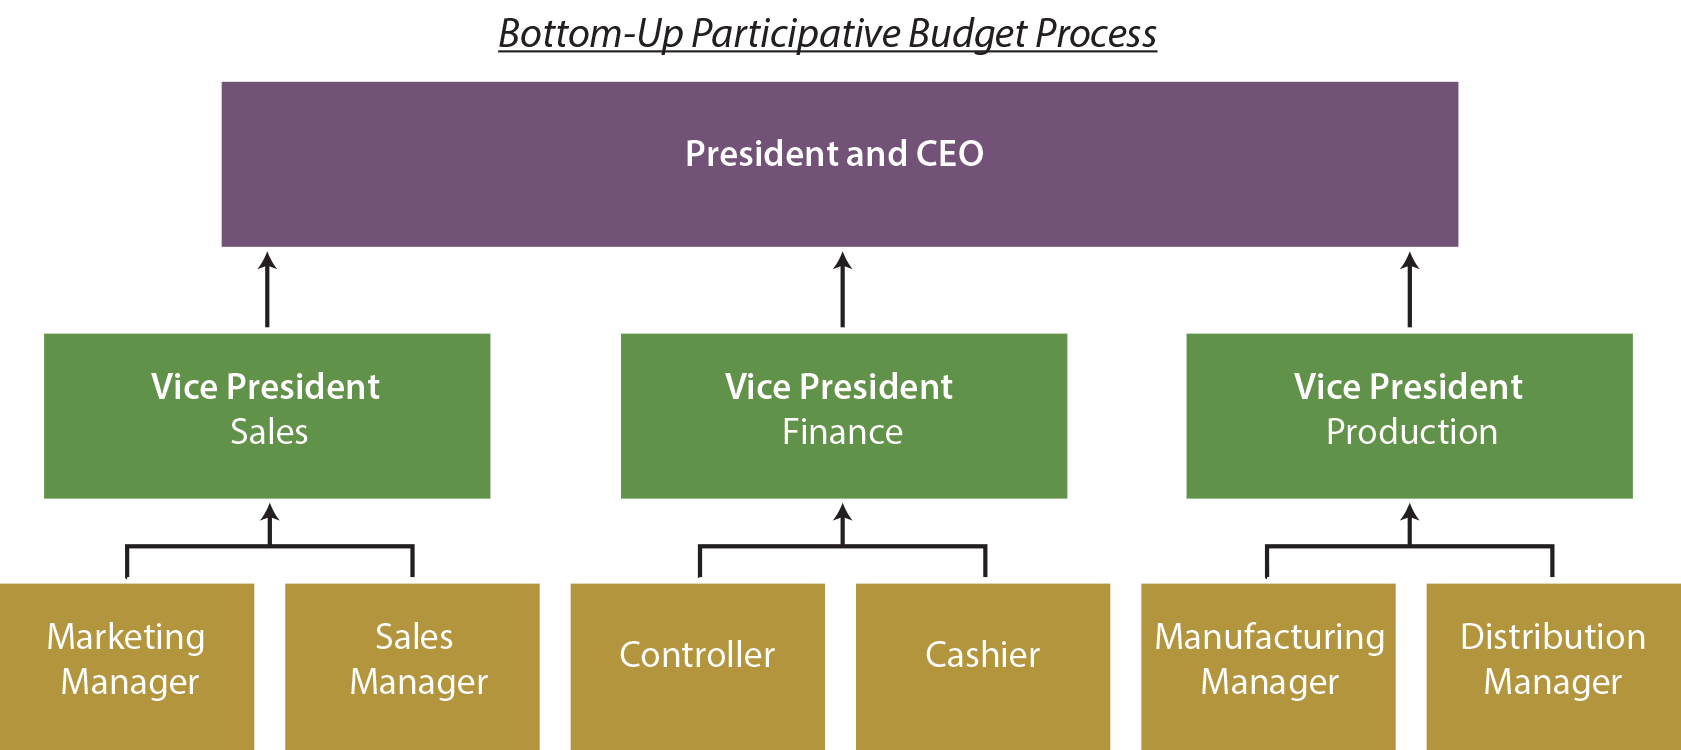 participative budgeting in mangerial accounting It is not participative budgeting that increases firm performance instead, circumstances that allow for higher performance induce firms to use participative budgeting the most commonly studied consequence or artifact of the budgeting process is budgetary slack.